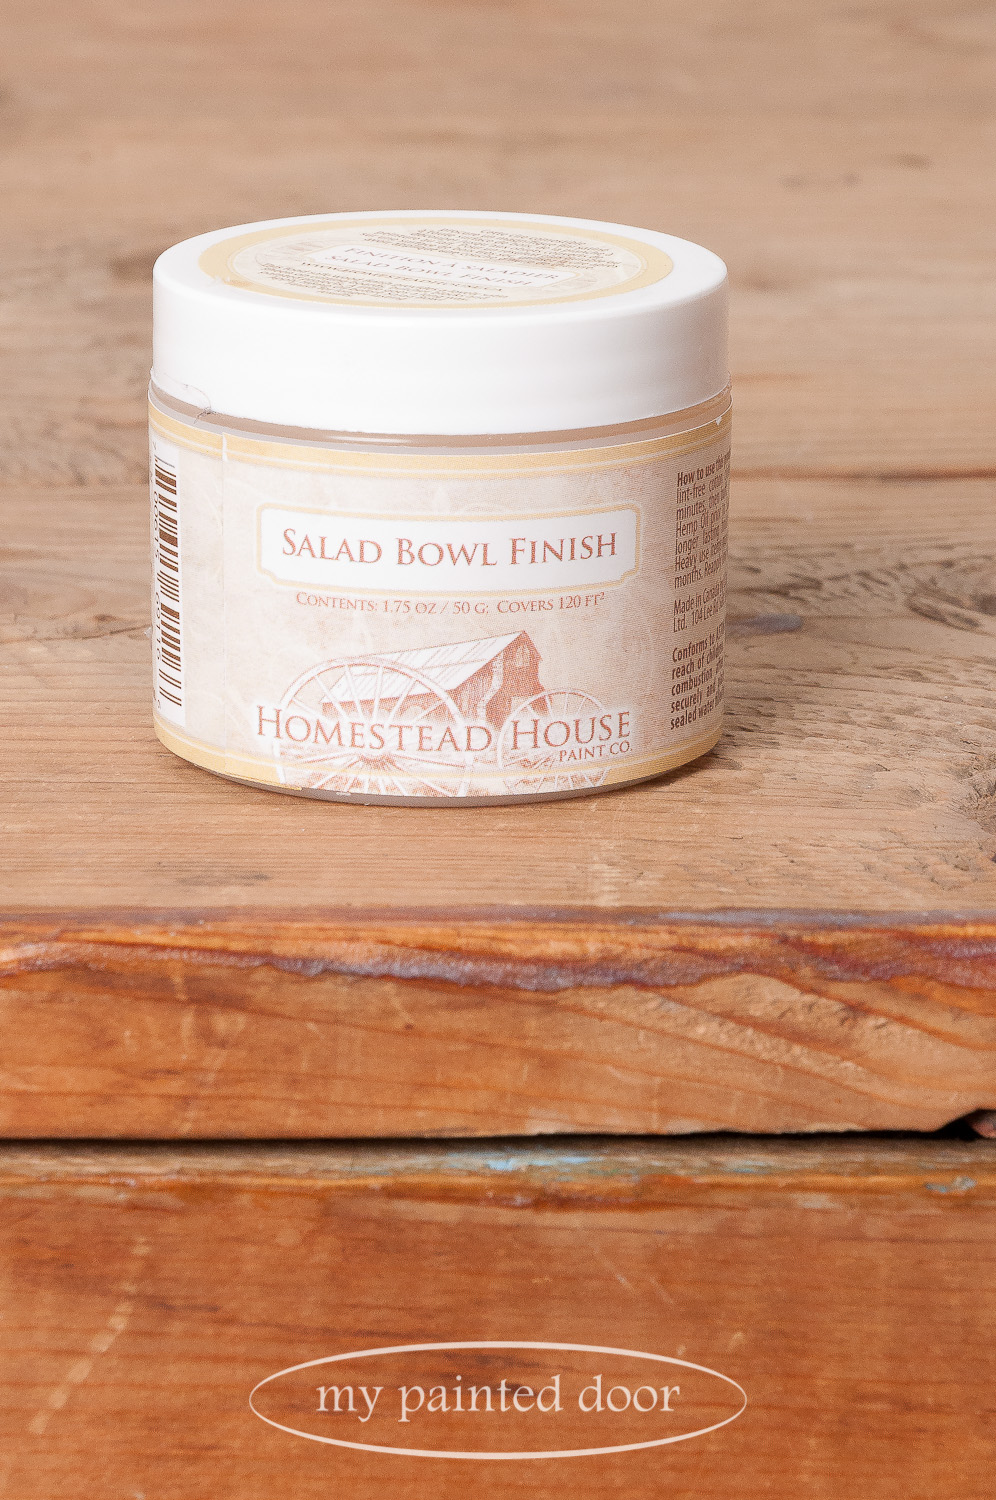 Homestead House Salad Bowl Finish is the perfect wax to use as a paint resist for distressing Fusion Mineral Paint.